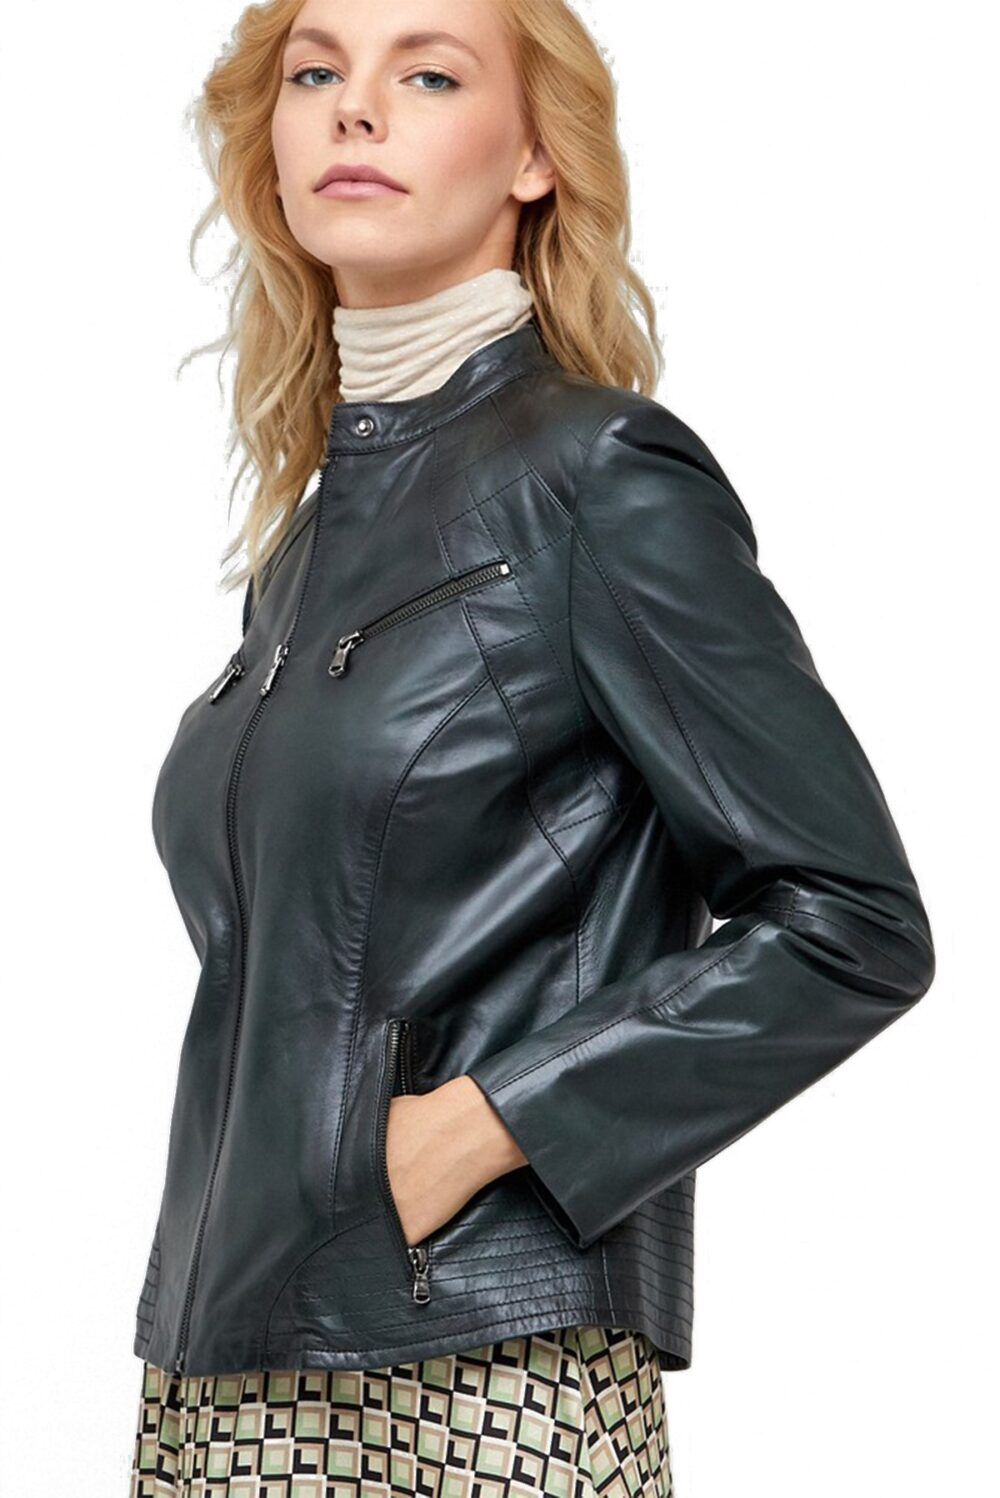 black or brown leather jacket women's